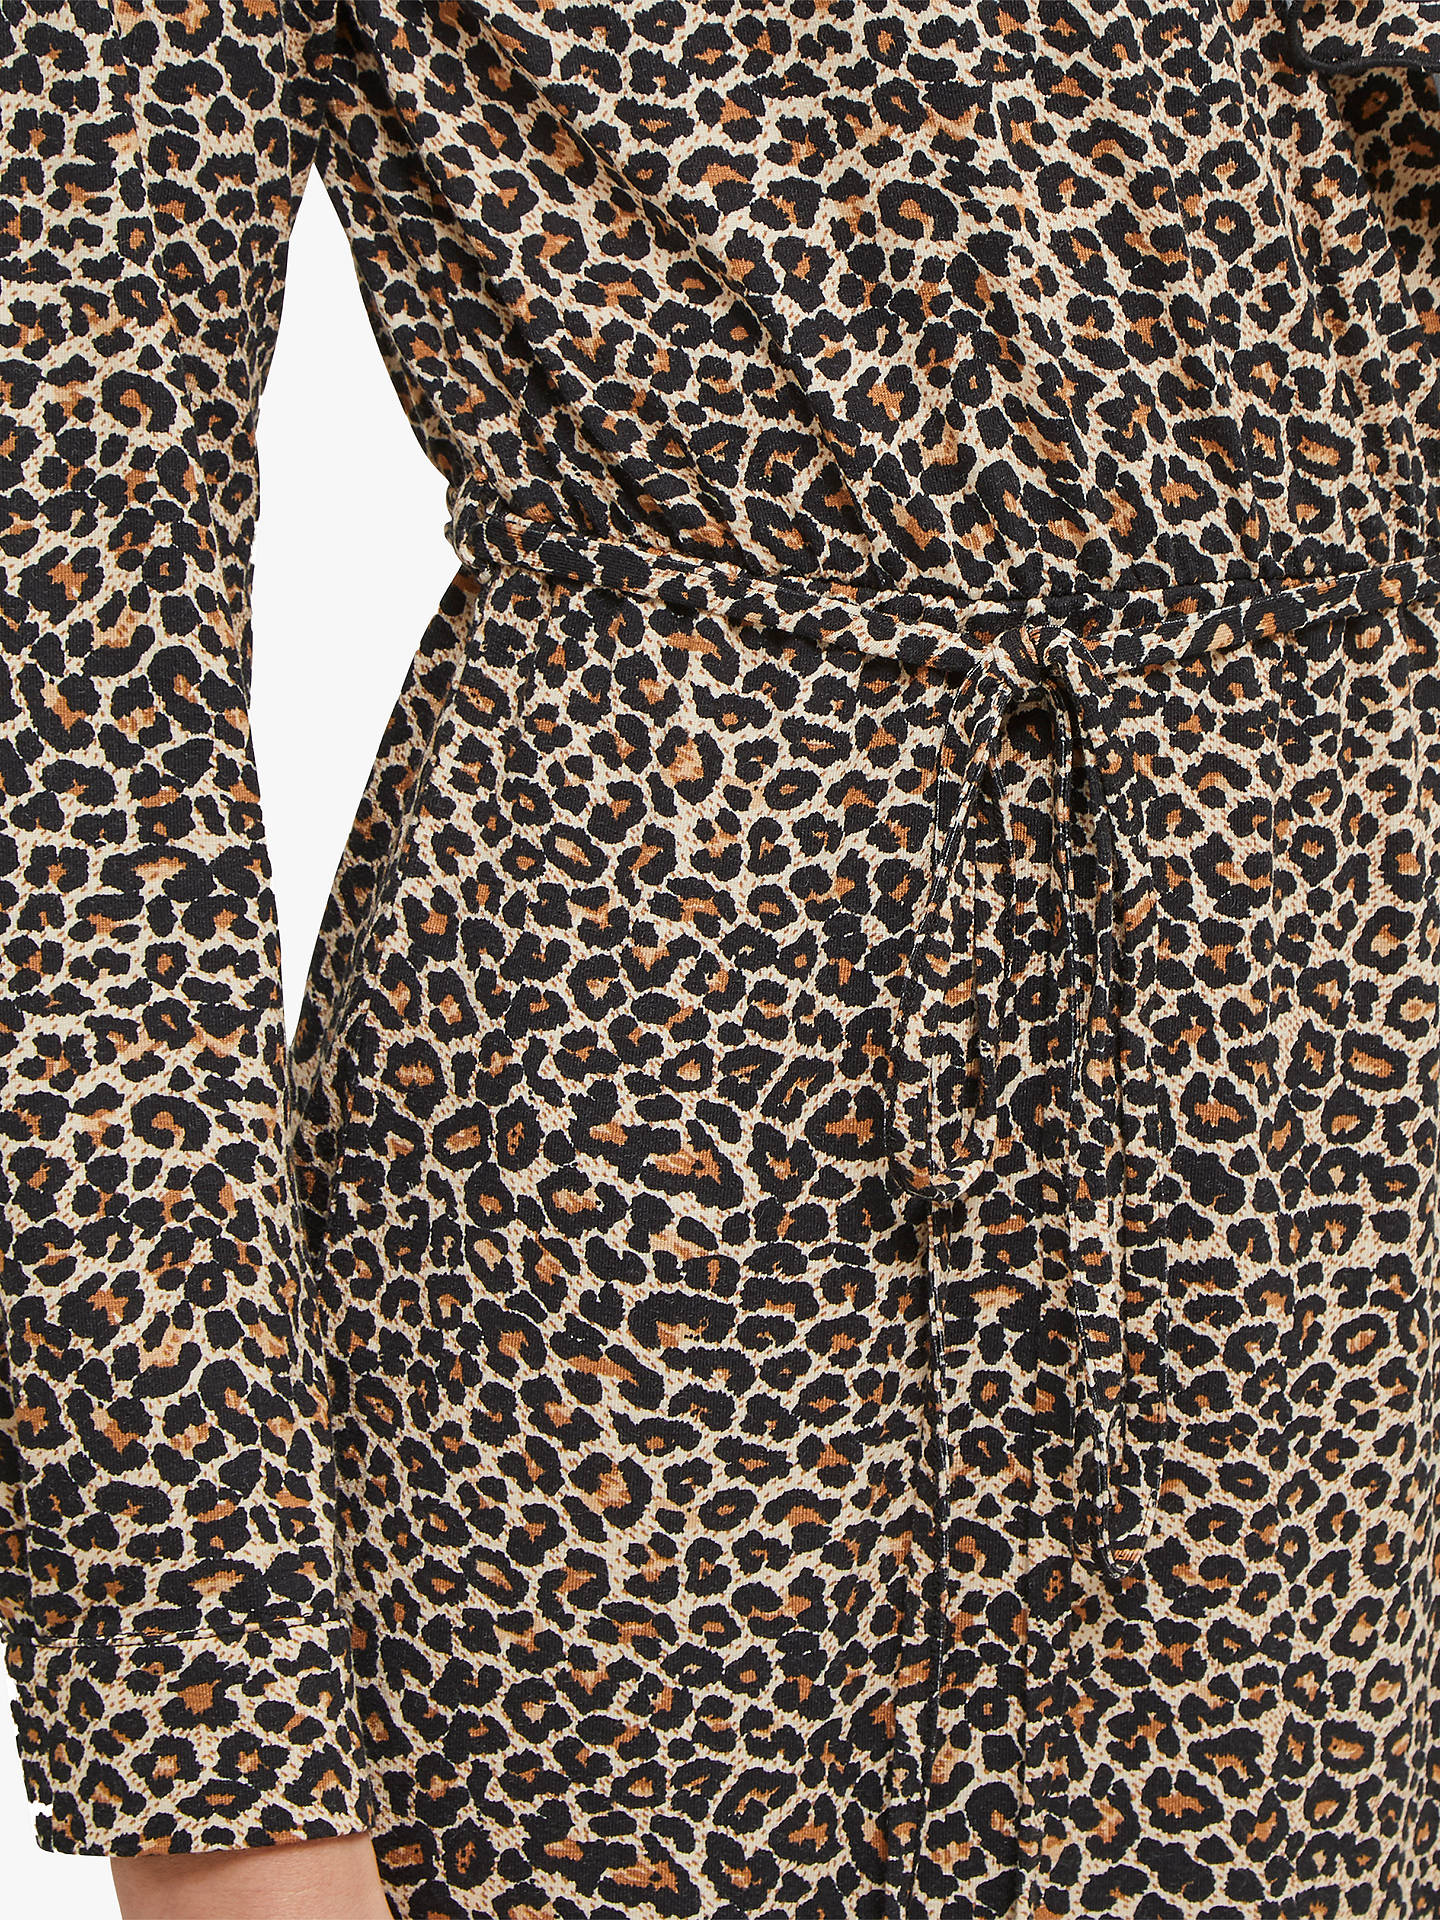 Buy French Connection Animal Print Wrap Dress, Brown Leopard, 8 Online at johnlewis.com